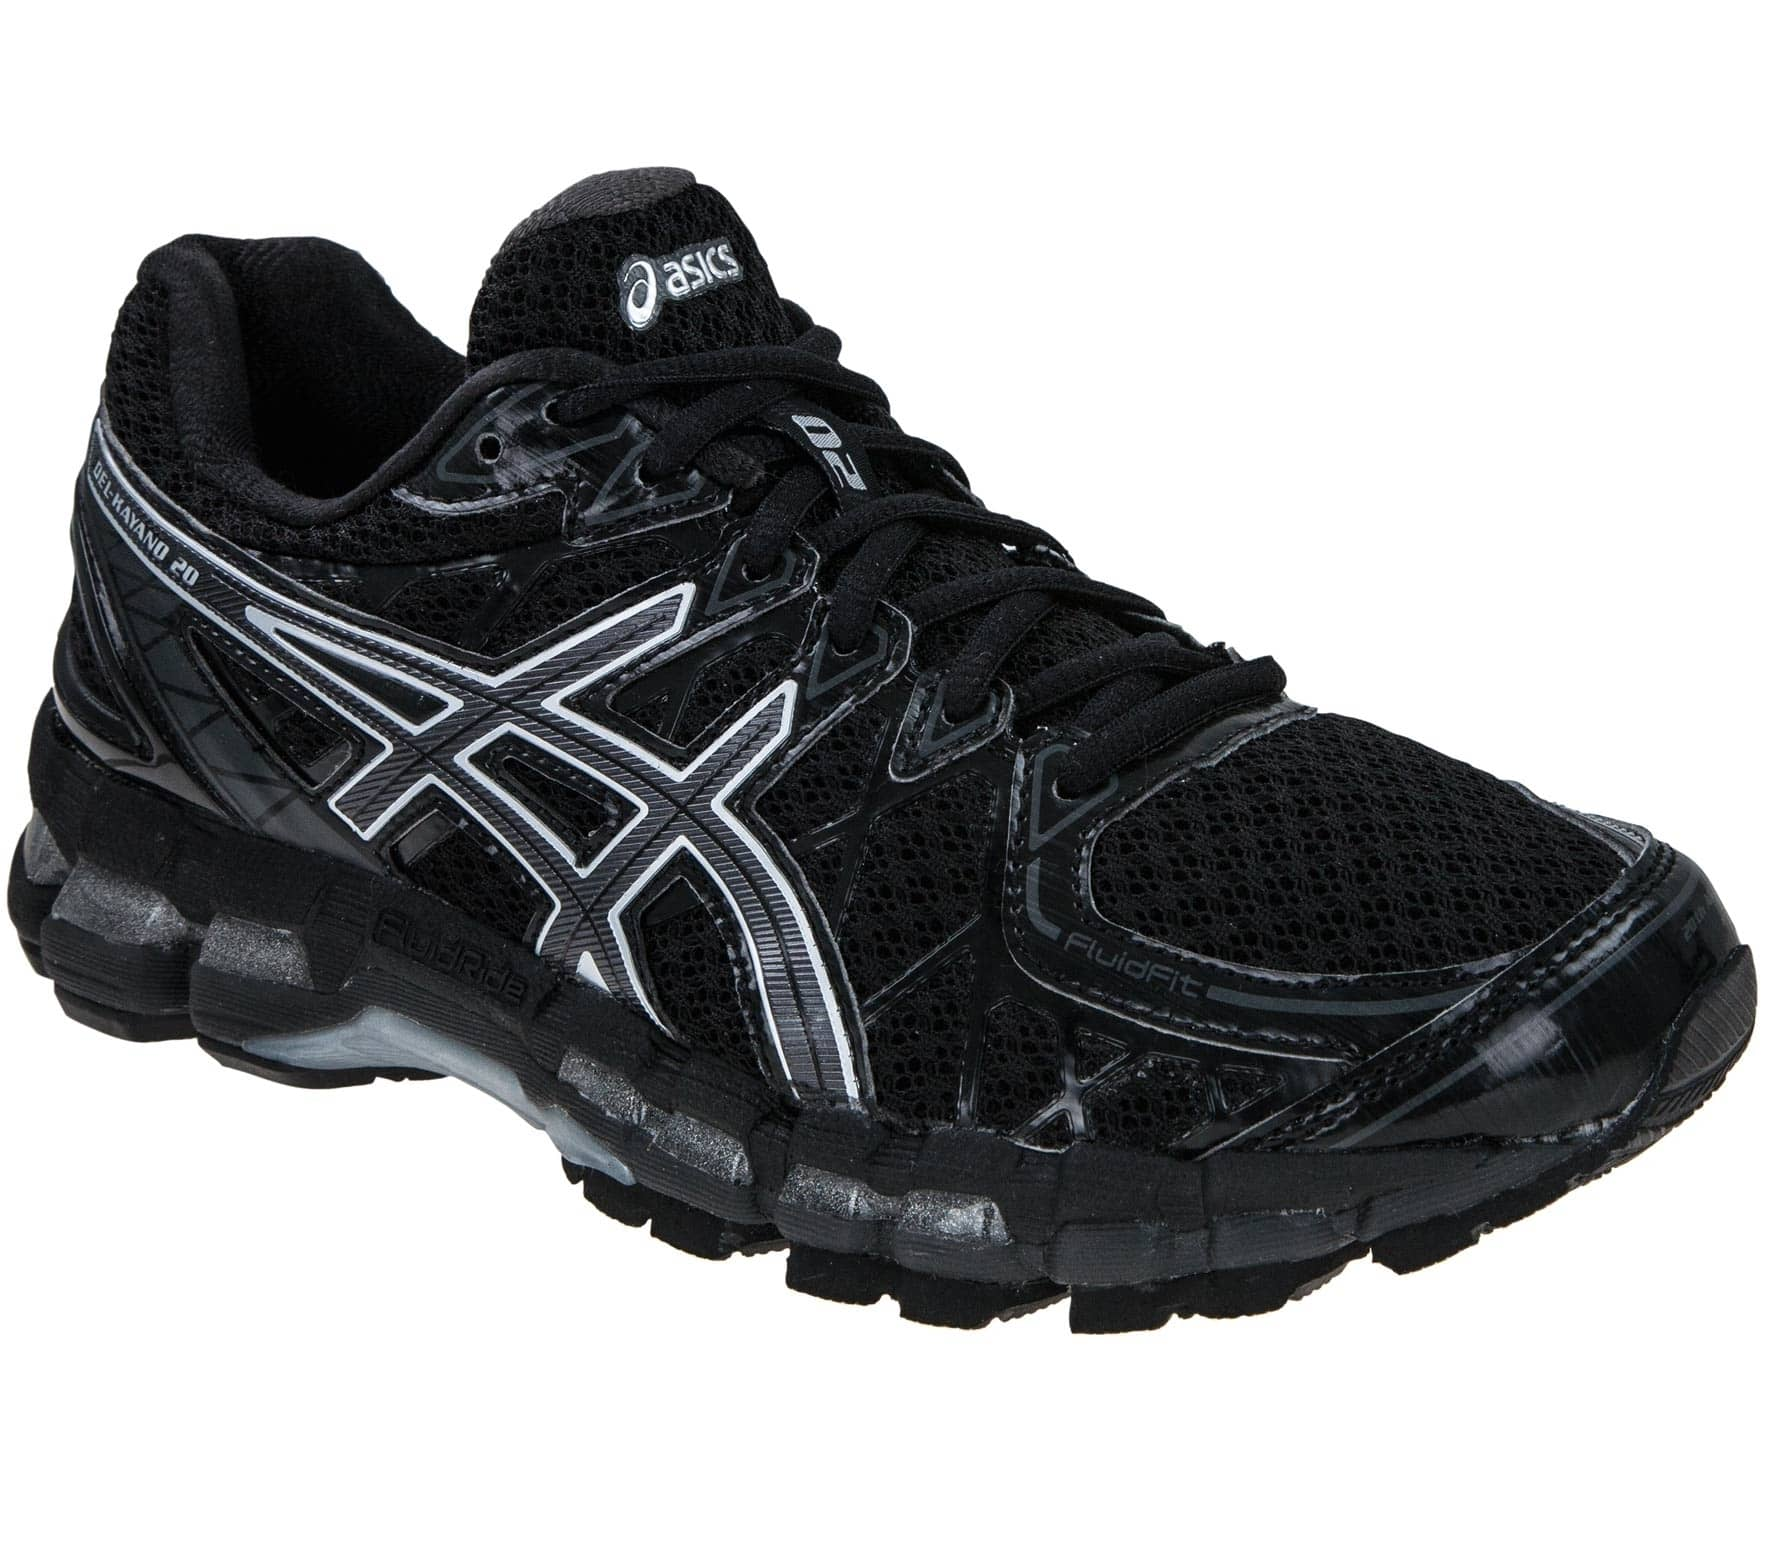 new style 3ba42 4f7ad Asics - Gel-Kayano 20 women s running shoes (black)